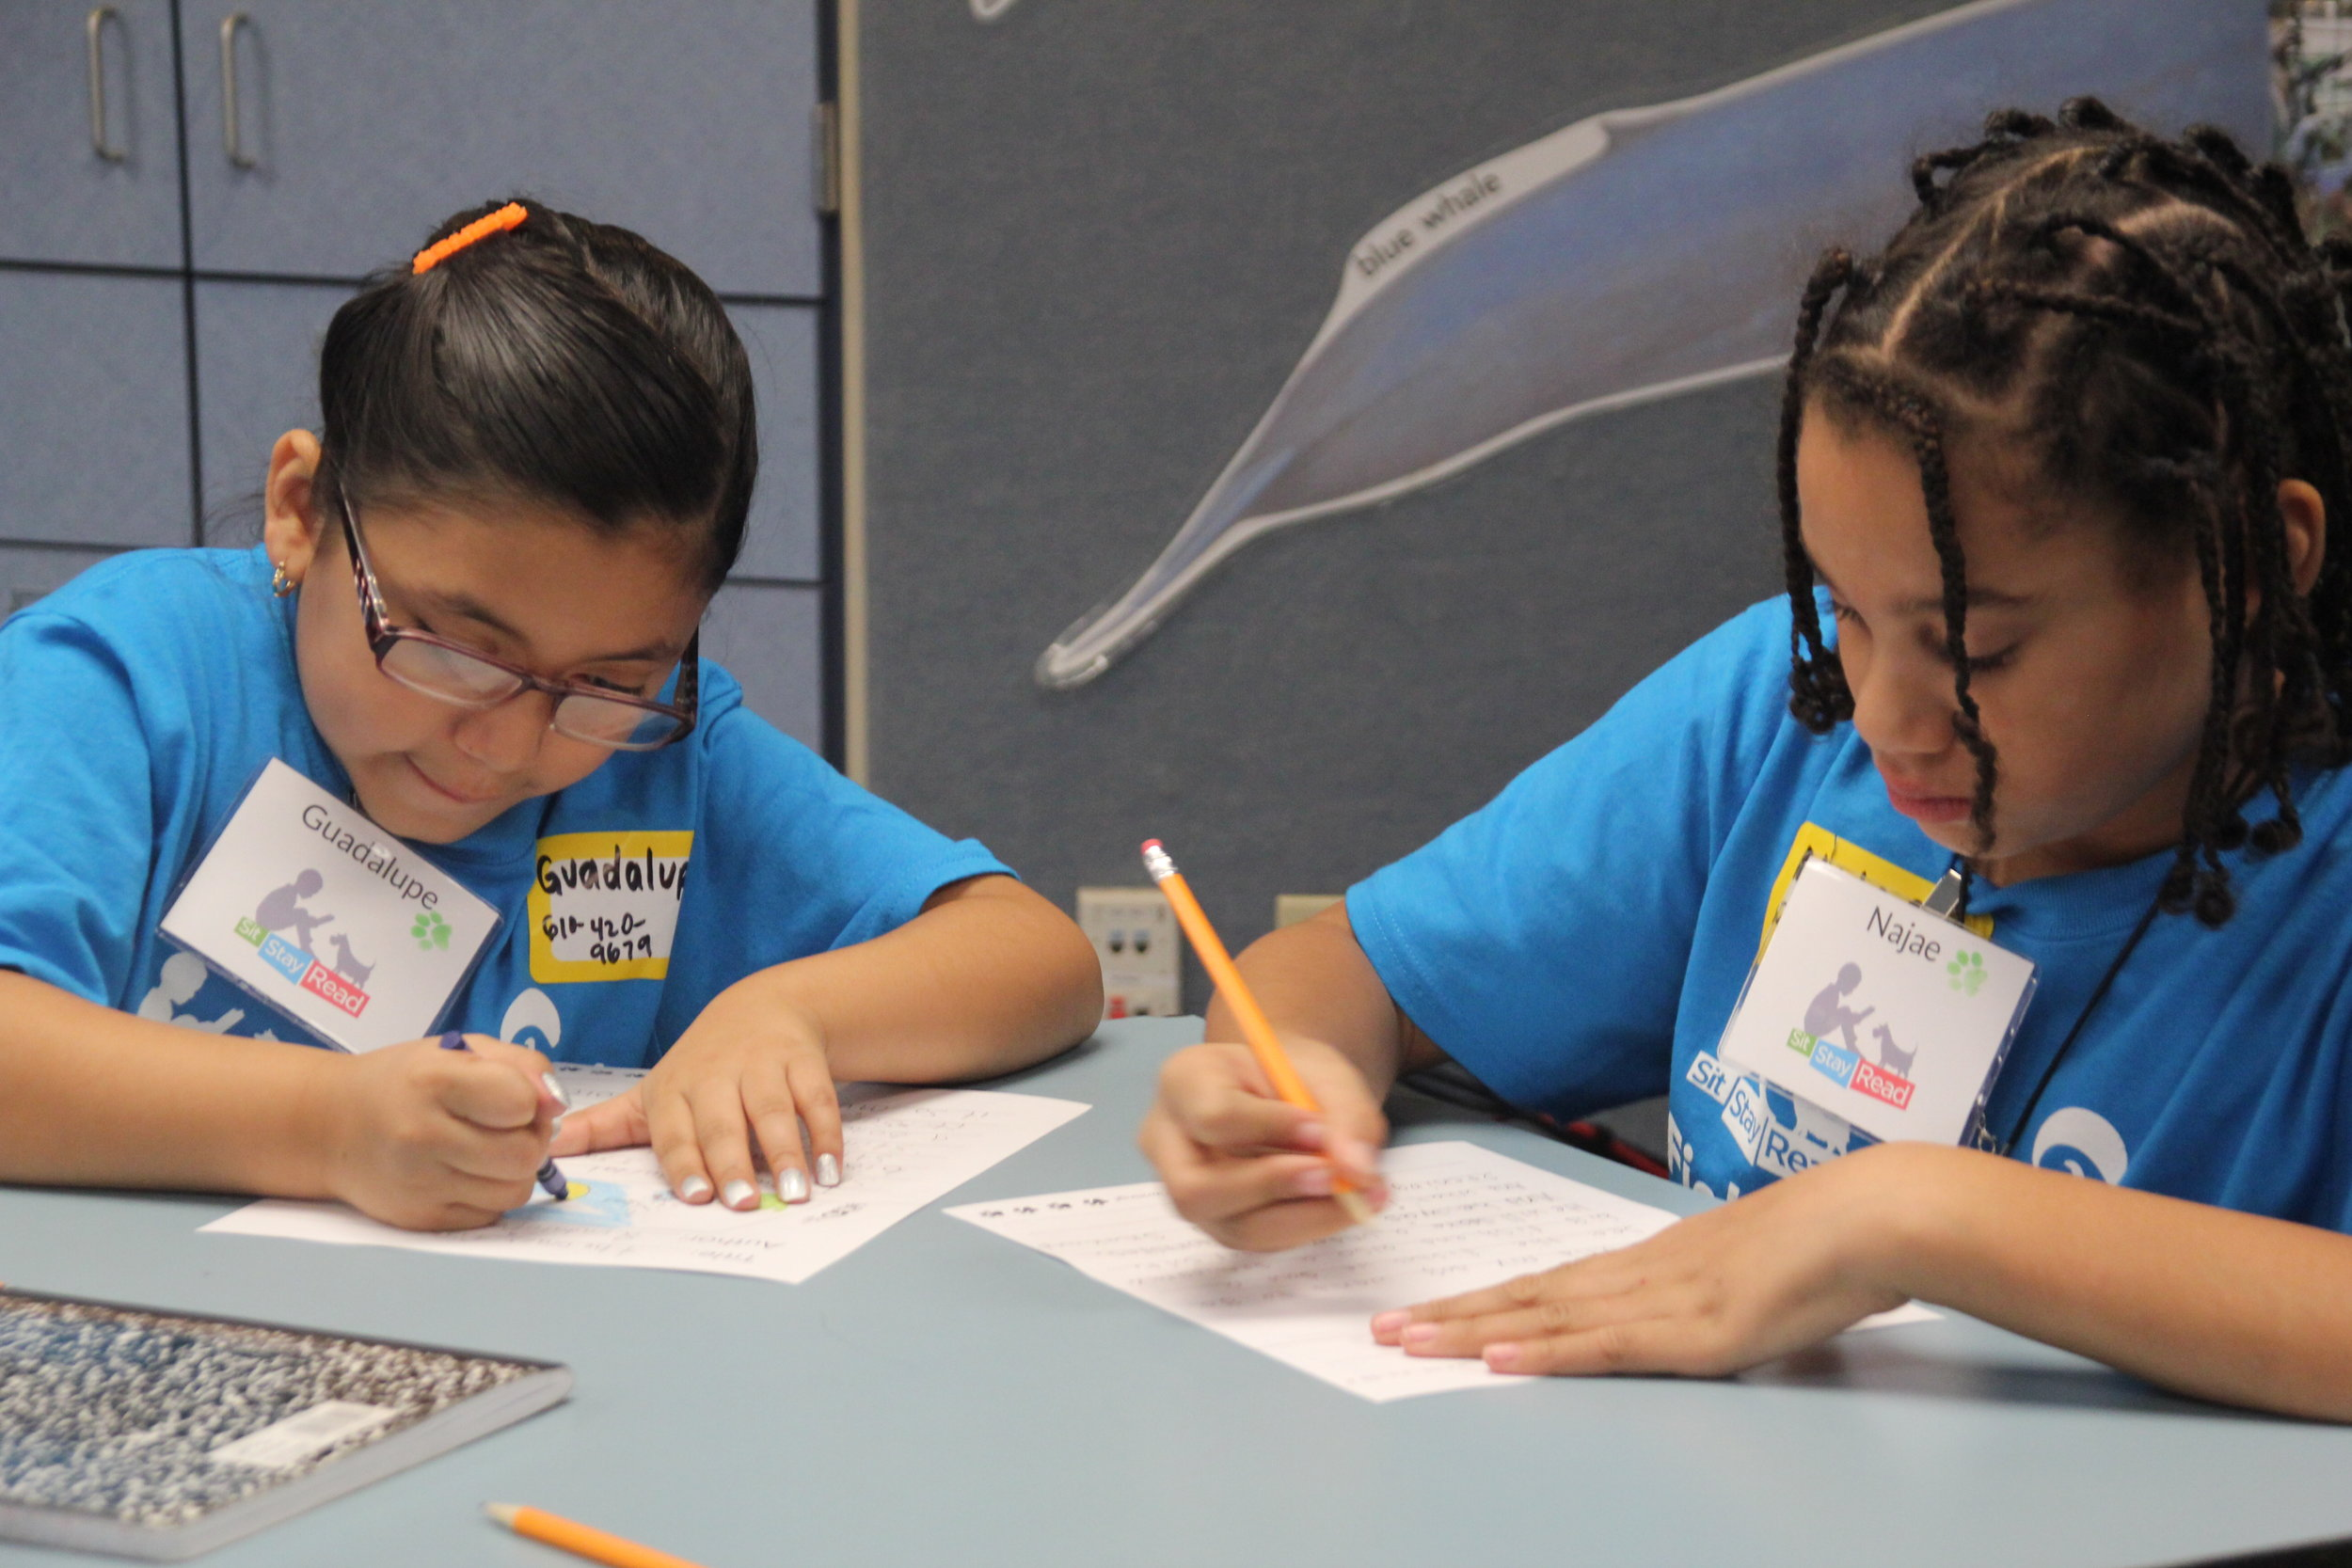 Students writing their creative stories at the Shedd Aquarium. These stories inspired the story for Where Are You, Dozer?